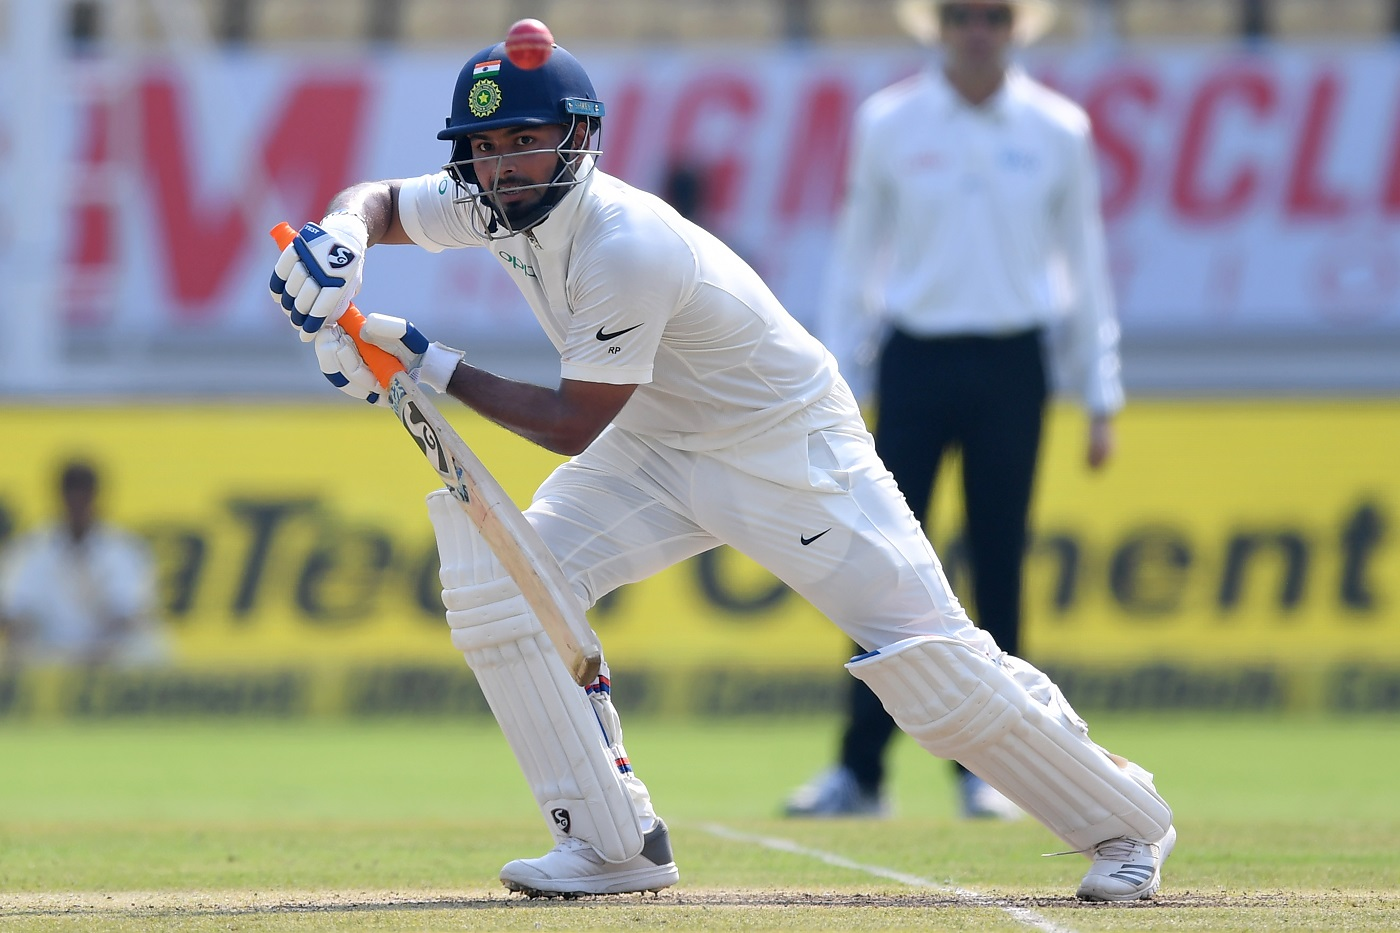 Rishabh Pant entertained the crowd to maximum | AFP